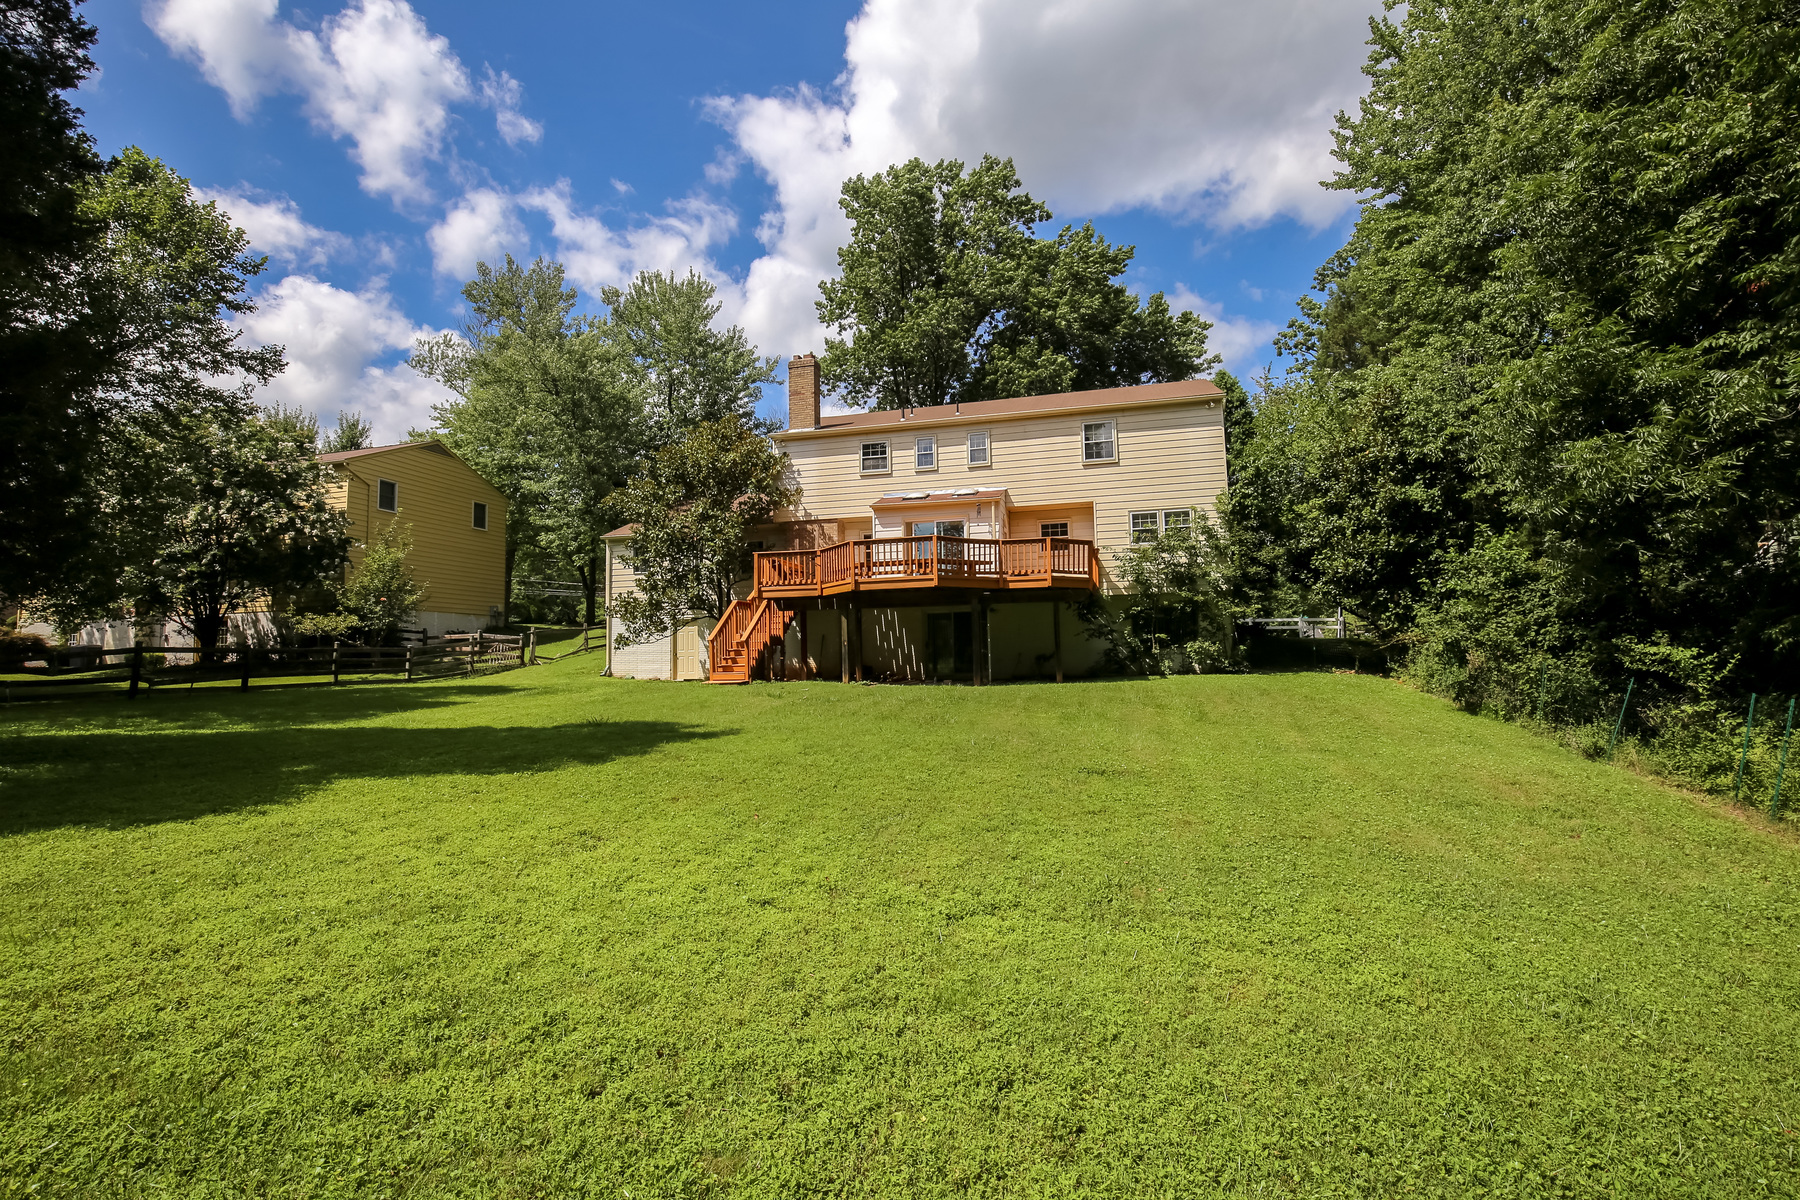 Additional photo for property listing at 9200 Bells Mill Road, Rockville 9200 Bells Mill Rd Rockville, Maryland 20854 Estados Unidos